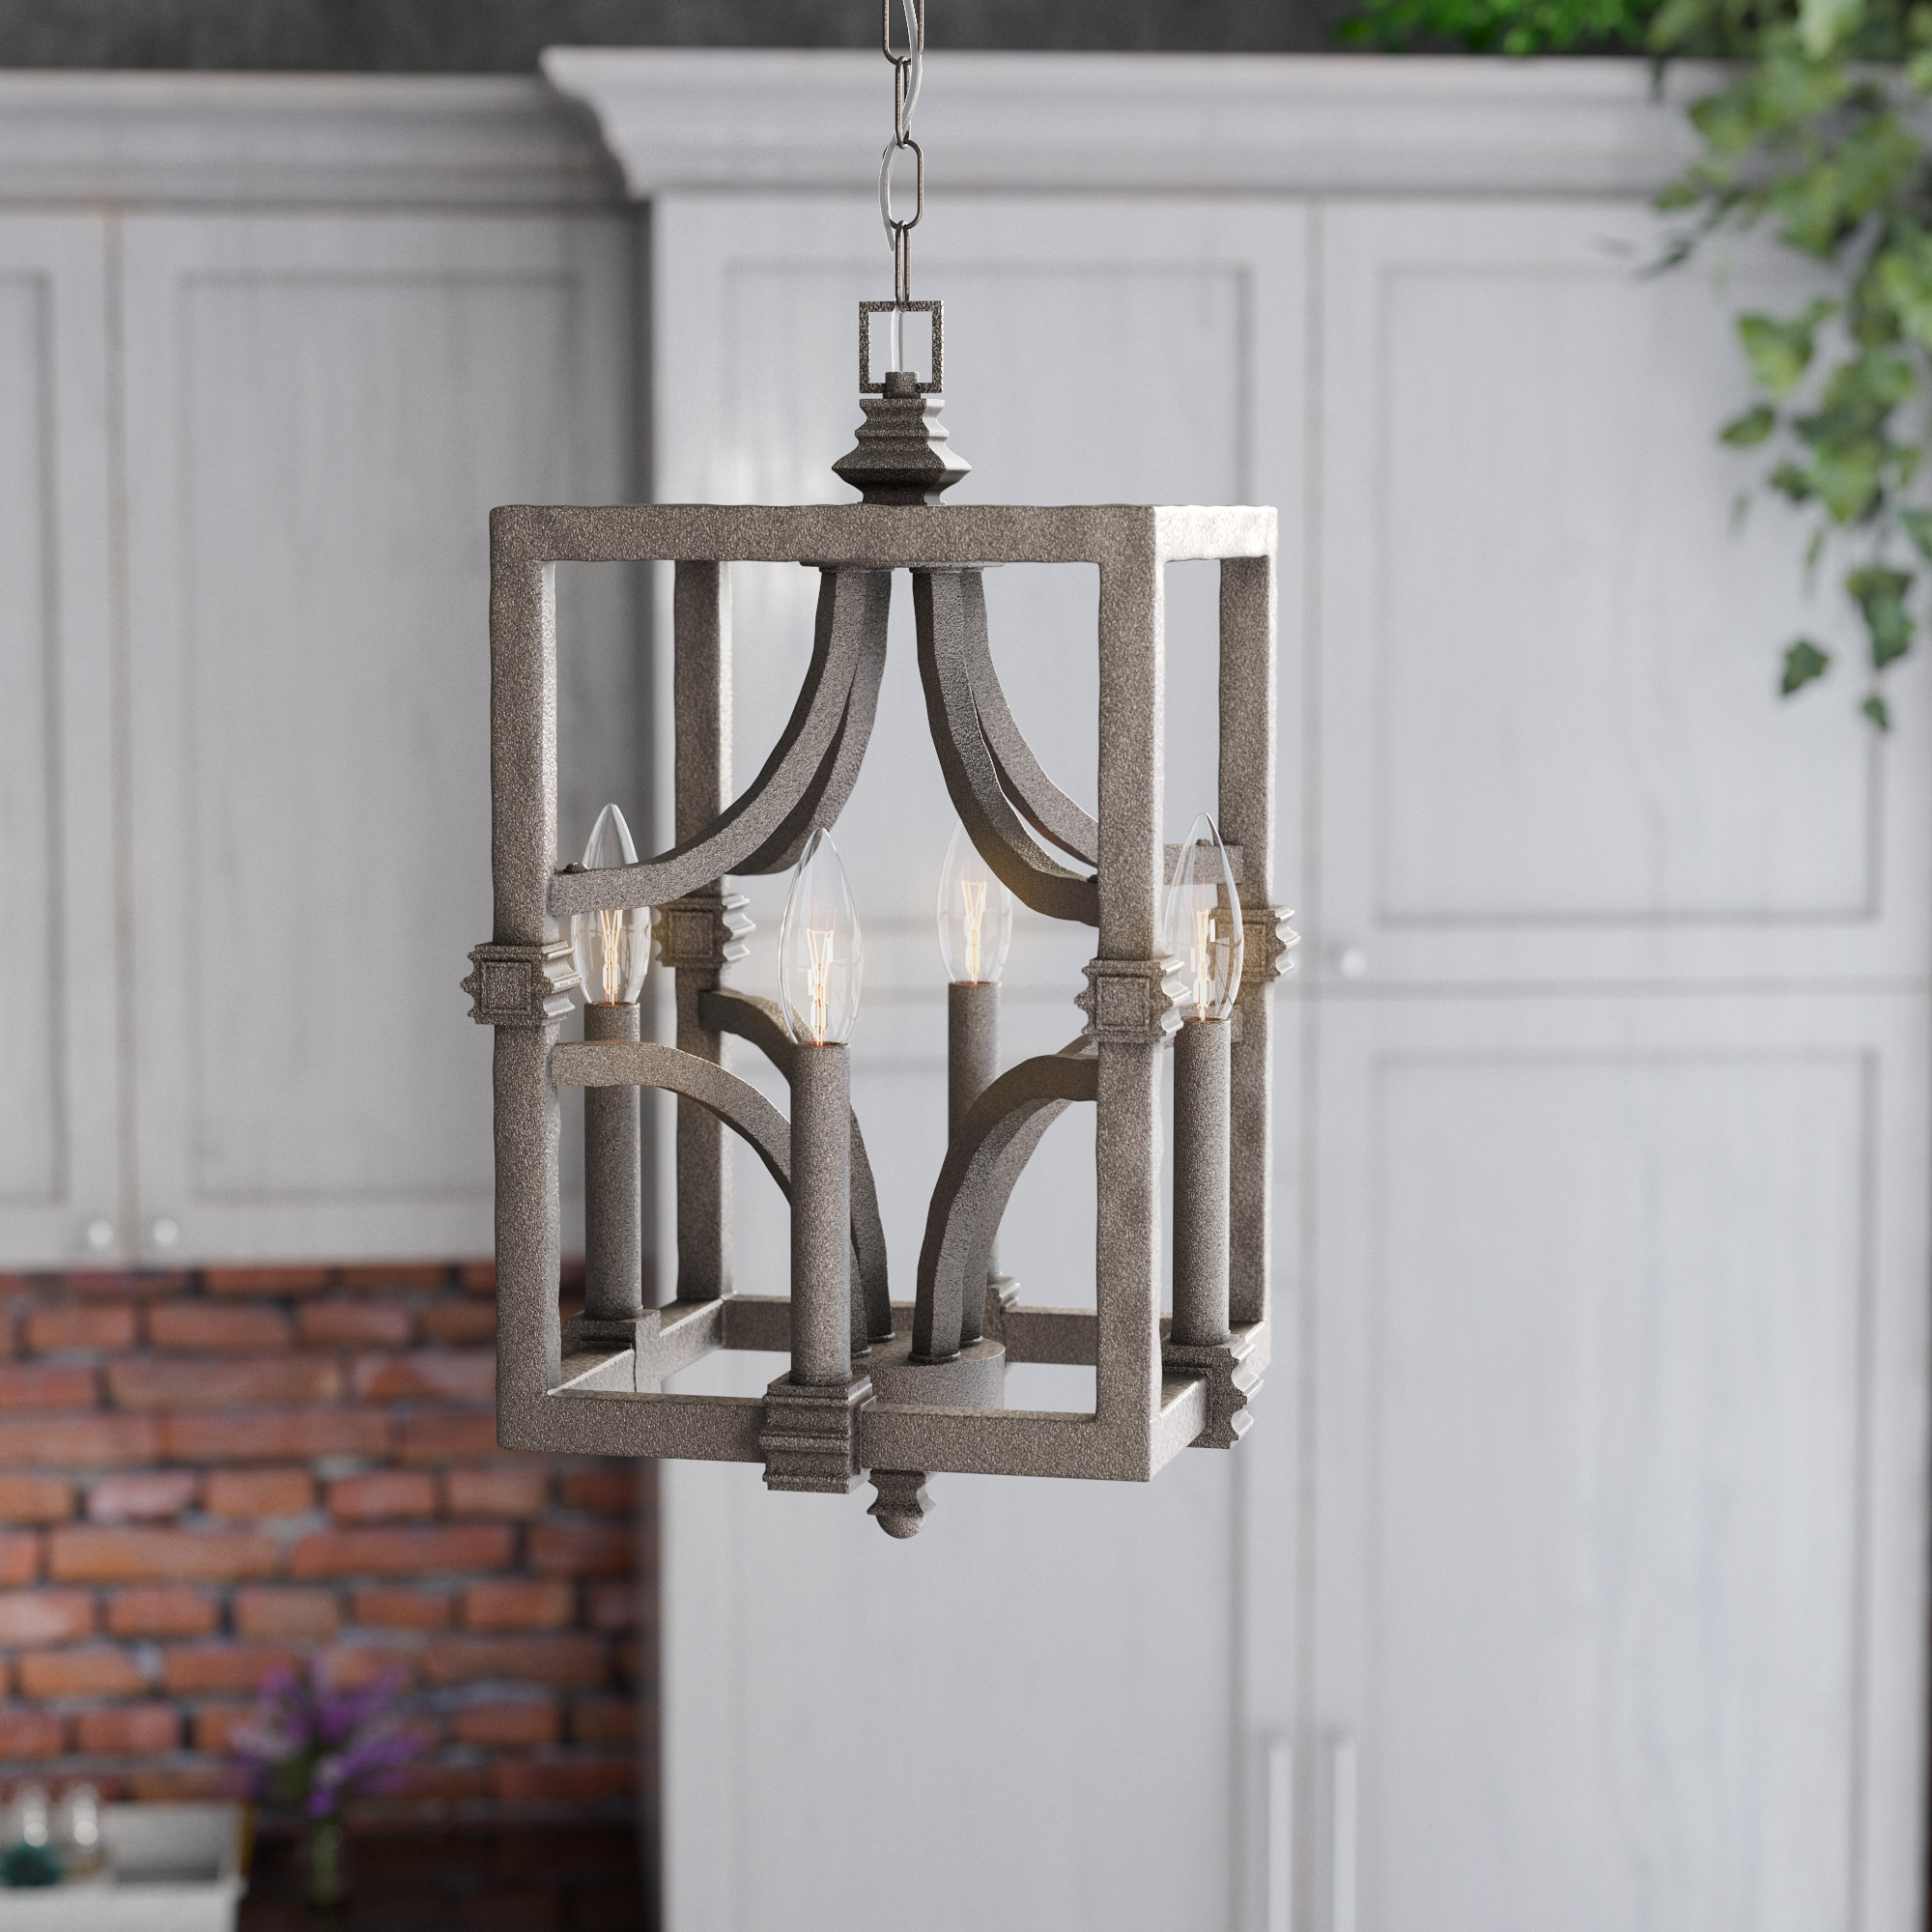 Recent Freeburg 4-Light Lantern Square / Rectangle Pendant intended for Freeburg 4-Light Lantern Square / Rectangle Pendants